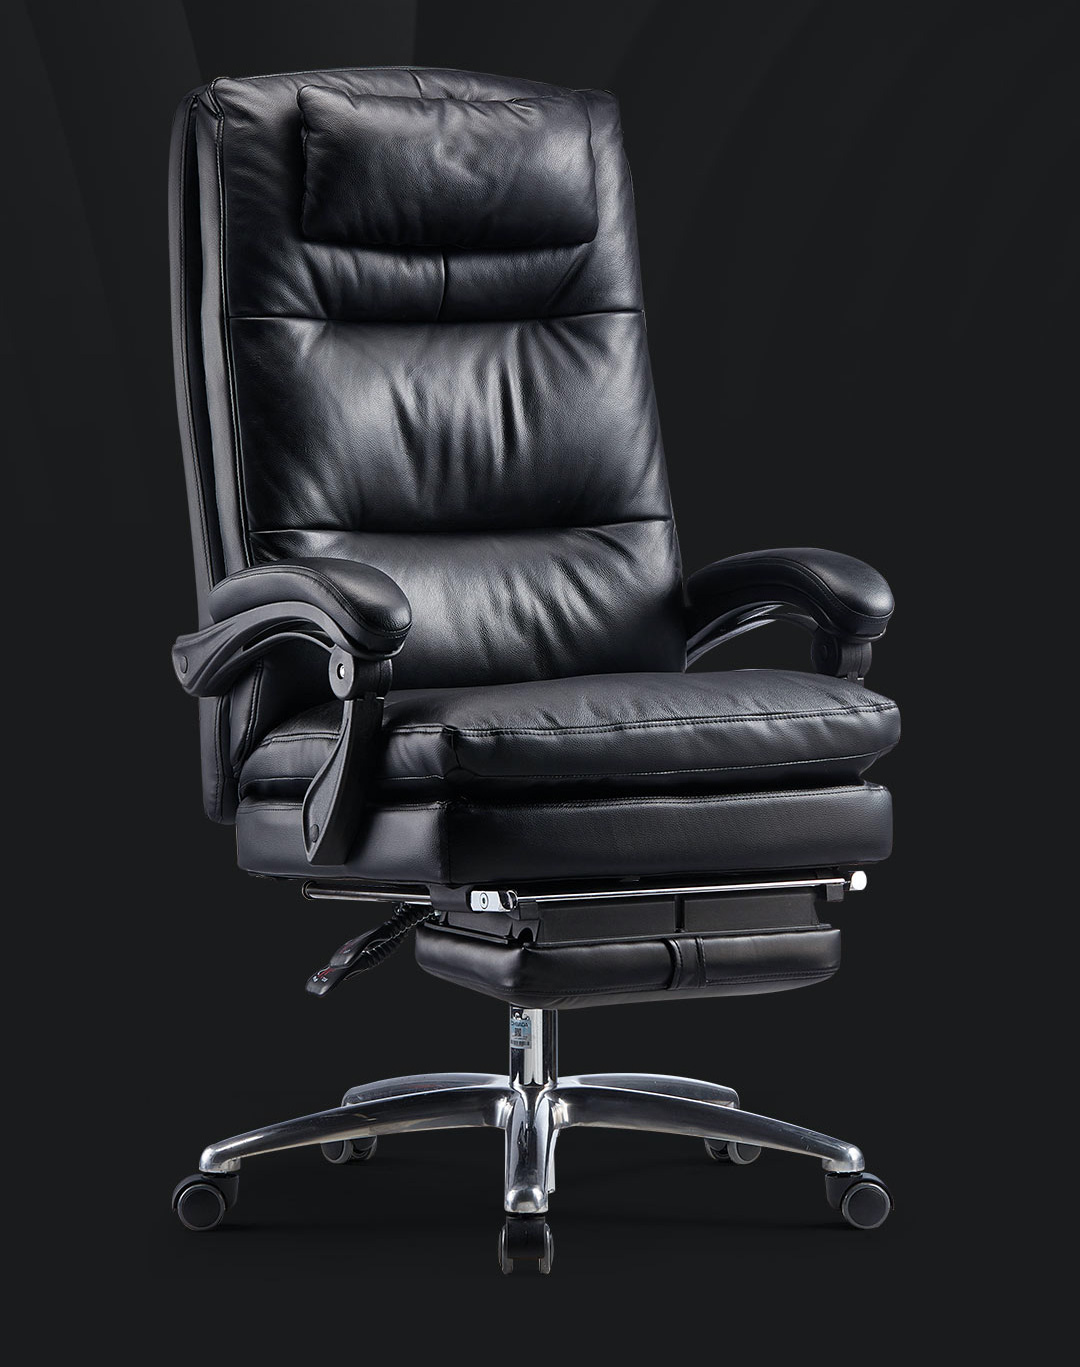 Xiaomi Hbada Leather Boss Chair With Footrest